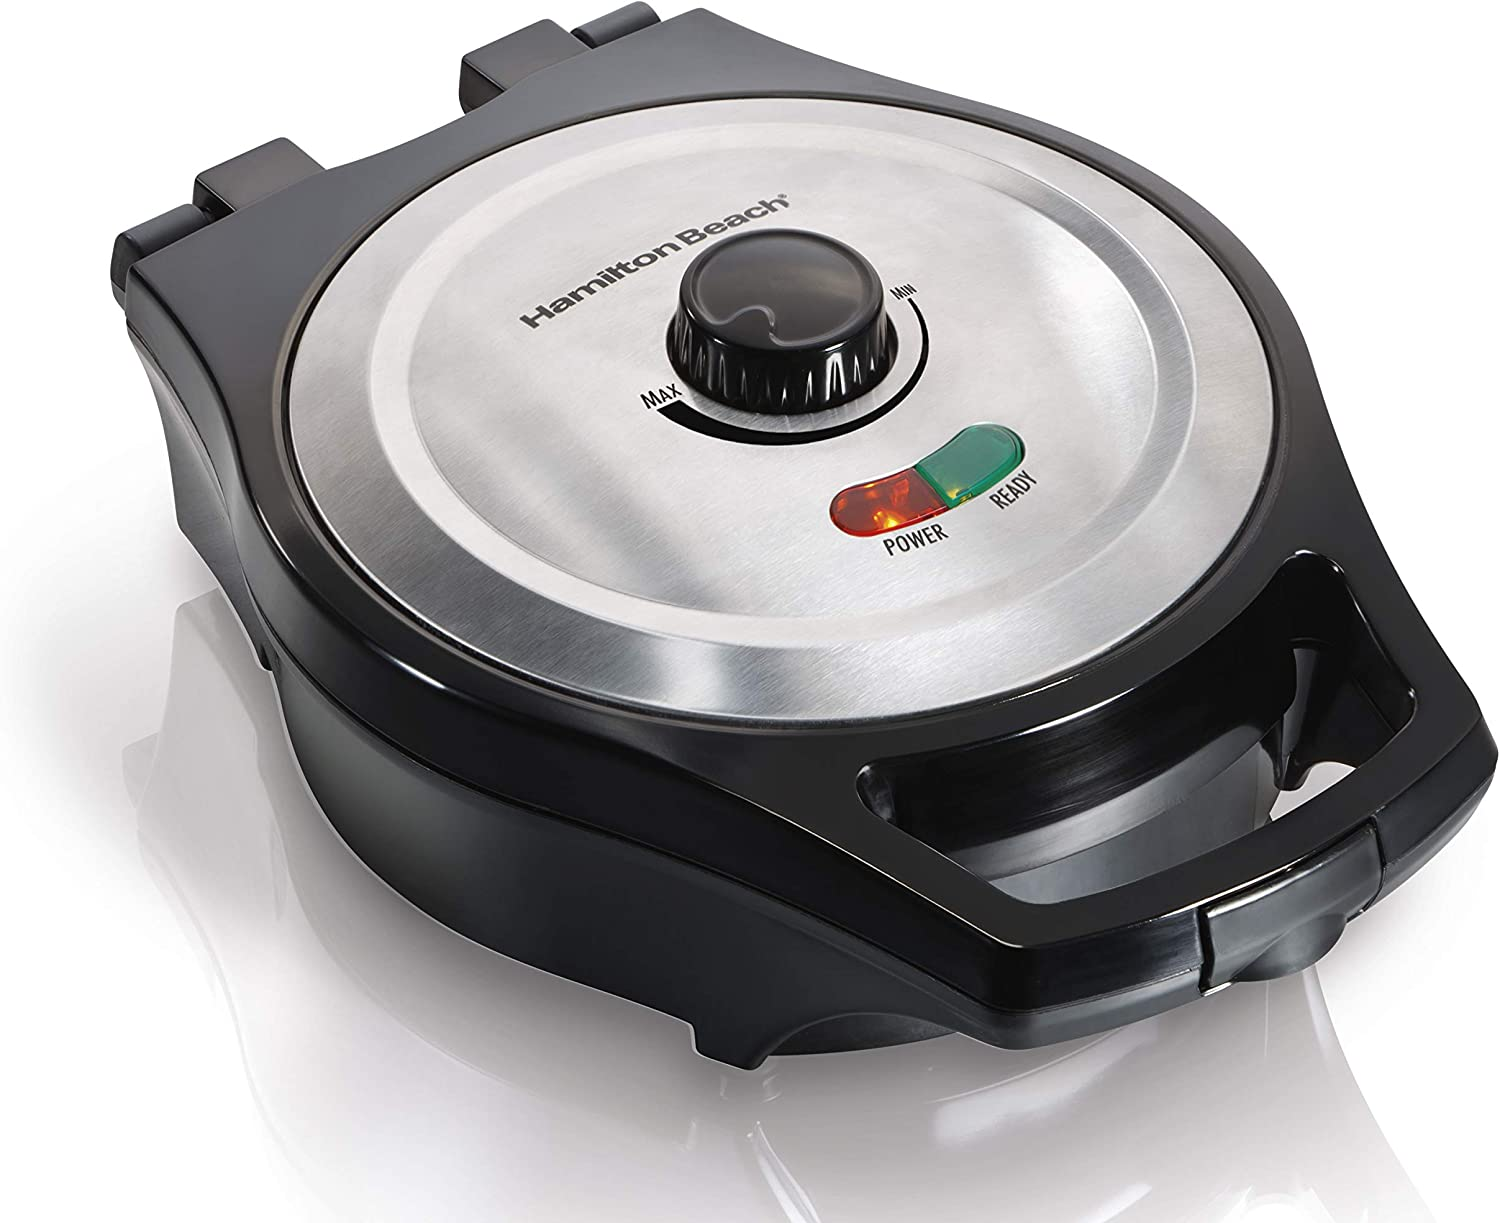 Hamilton Beach Belgian Waffle Maker, Mess free with Adjustable Browning, 650 Watts, Black (26091)